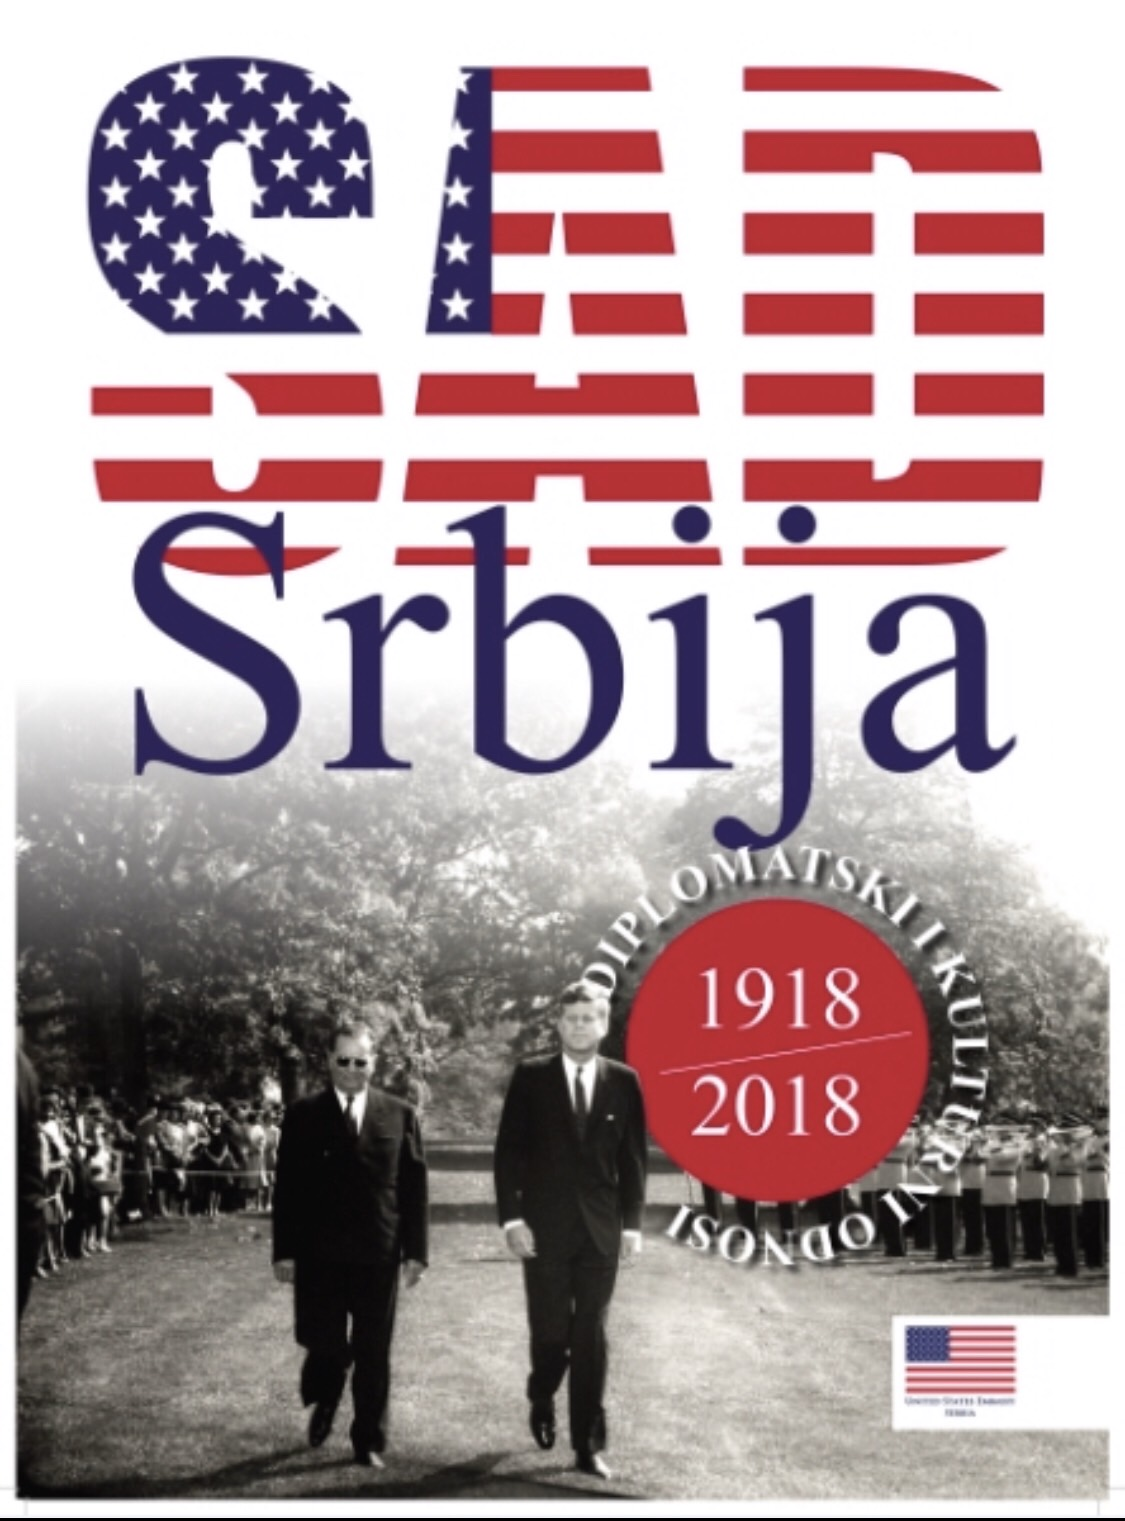 Photo of Javni čas istorije: SAD – Srbija 1918-2018, diplomatski i kulturni odnosi